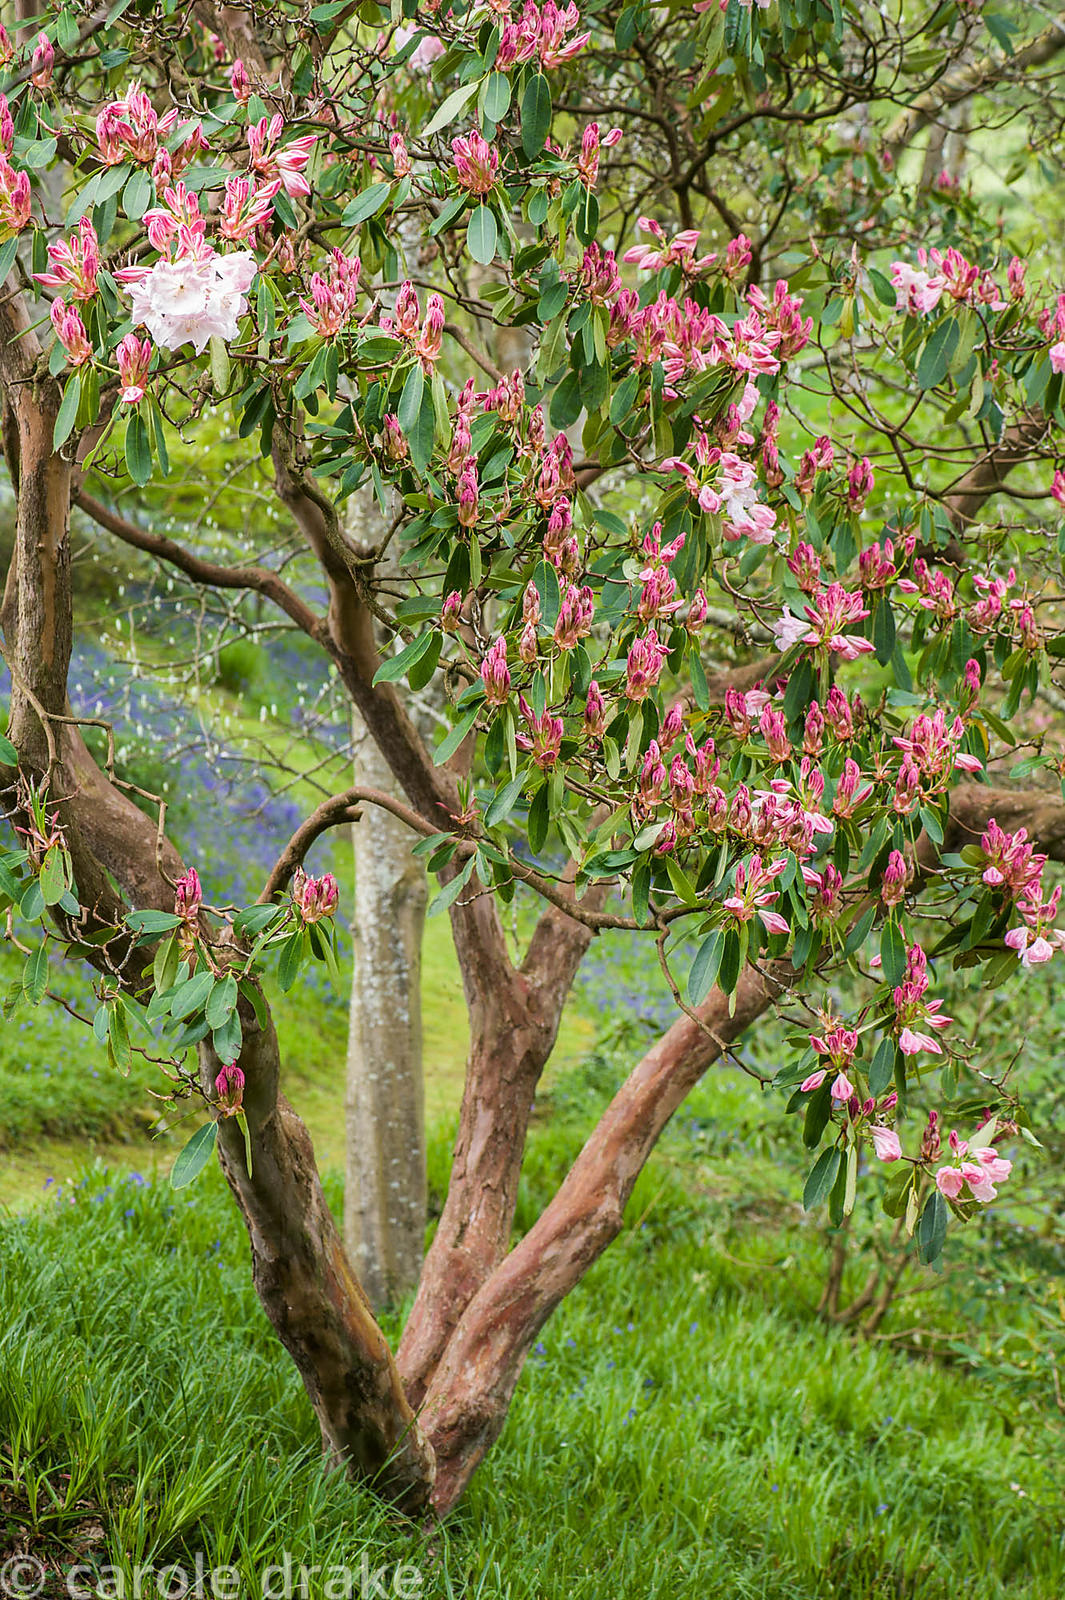 Rhododendron (Loderi Group) 'Loderi King George' in the Dell with carpets of bluebells beyond.